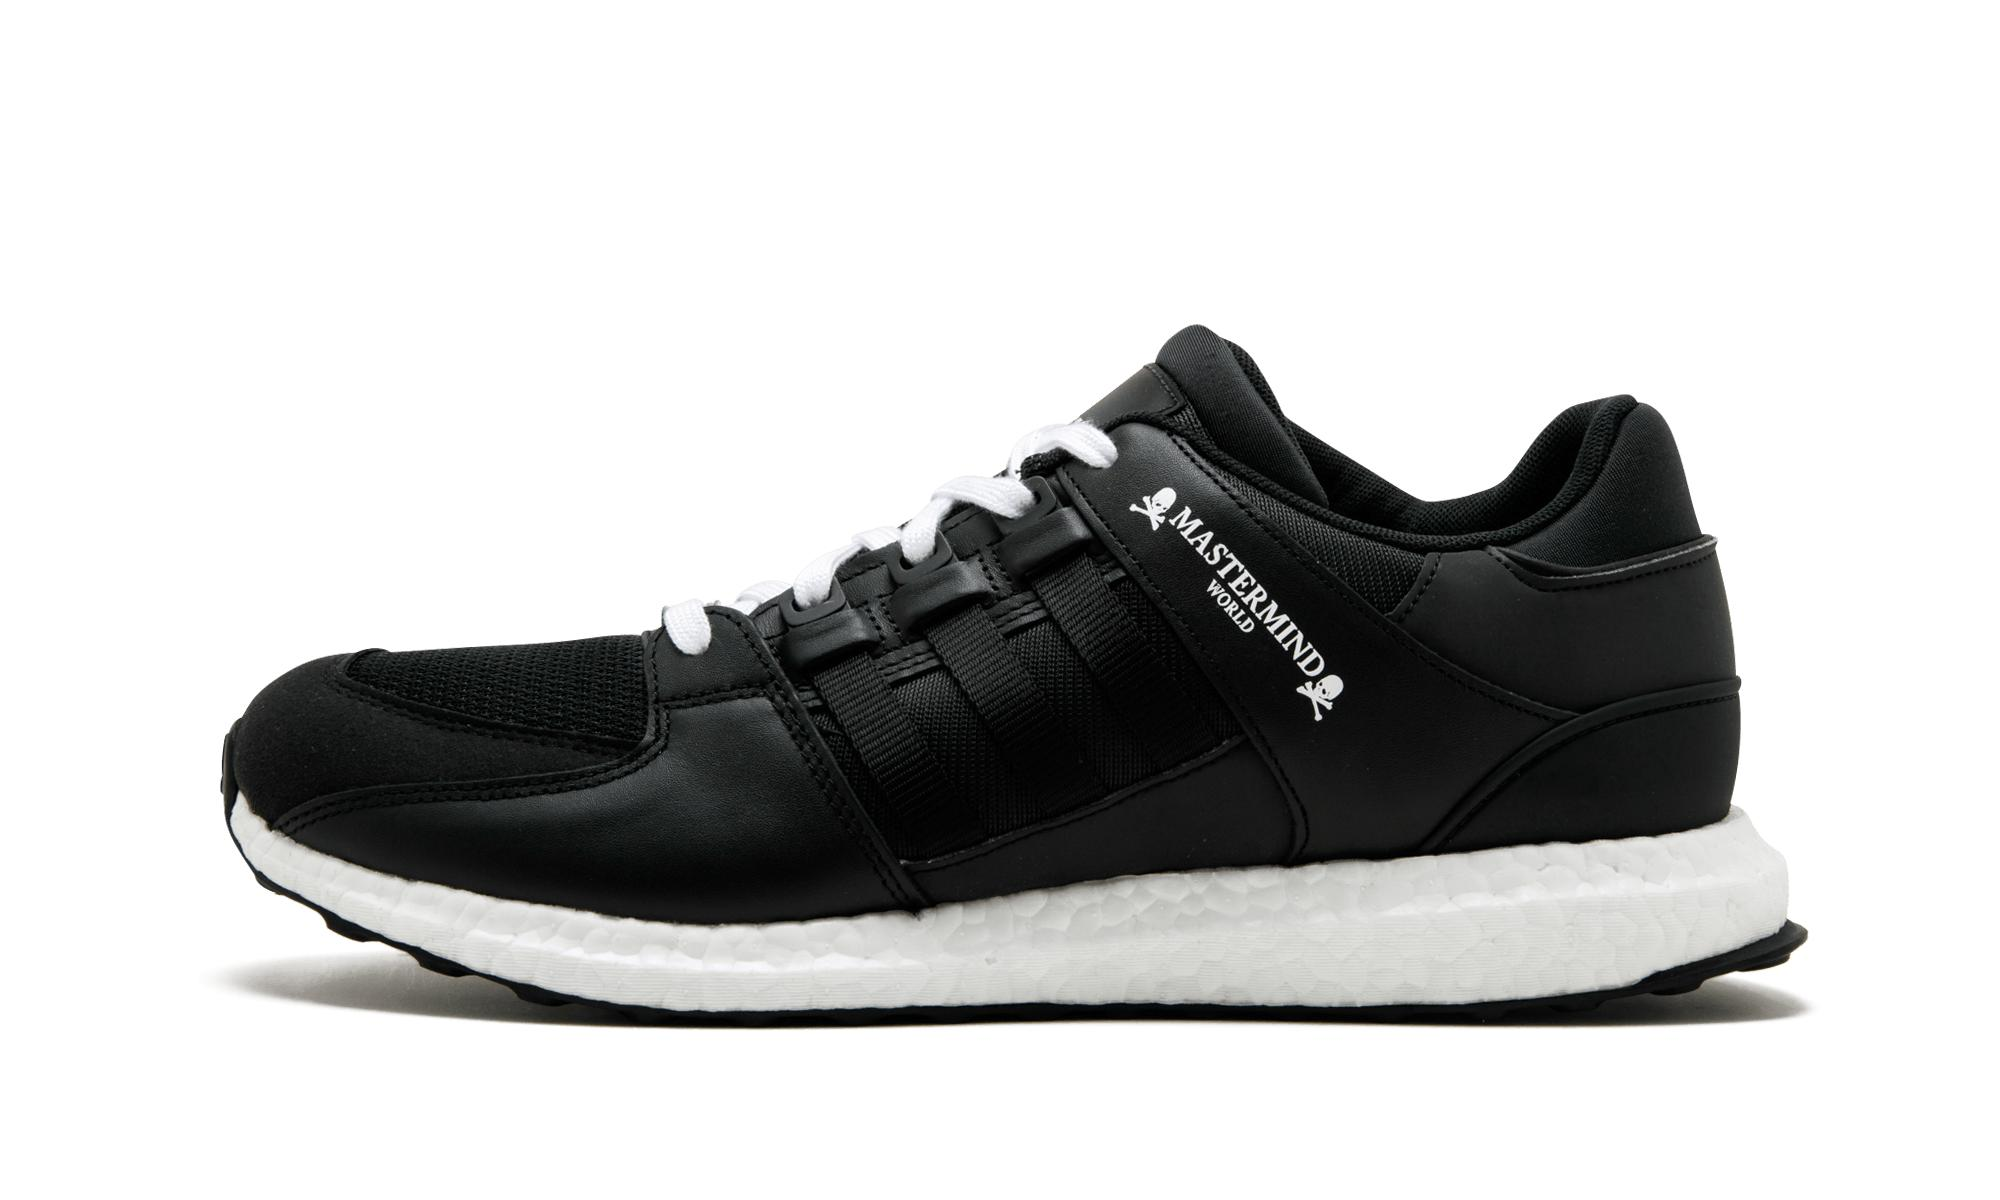 7a3cd9d18b33 Lyst - adidas Eqt Support Ultra Mmw in Black for Men - Save 32%